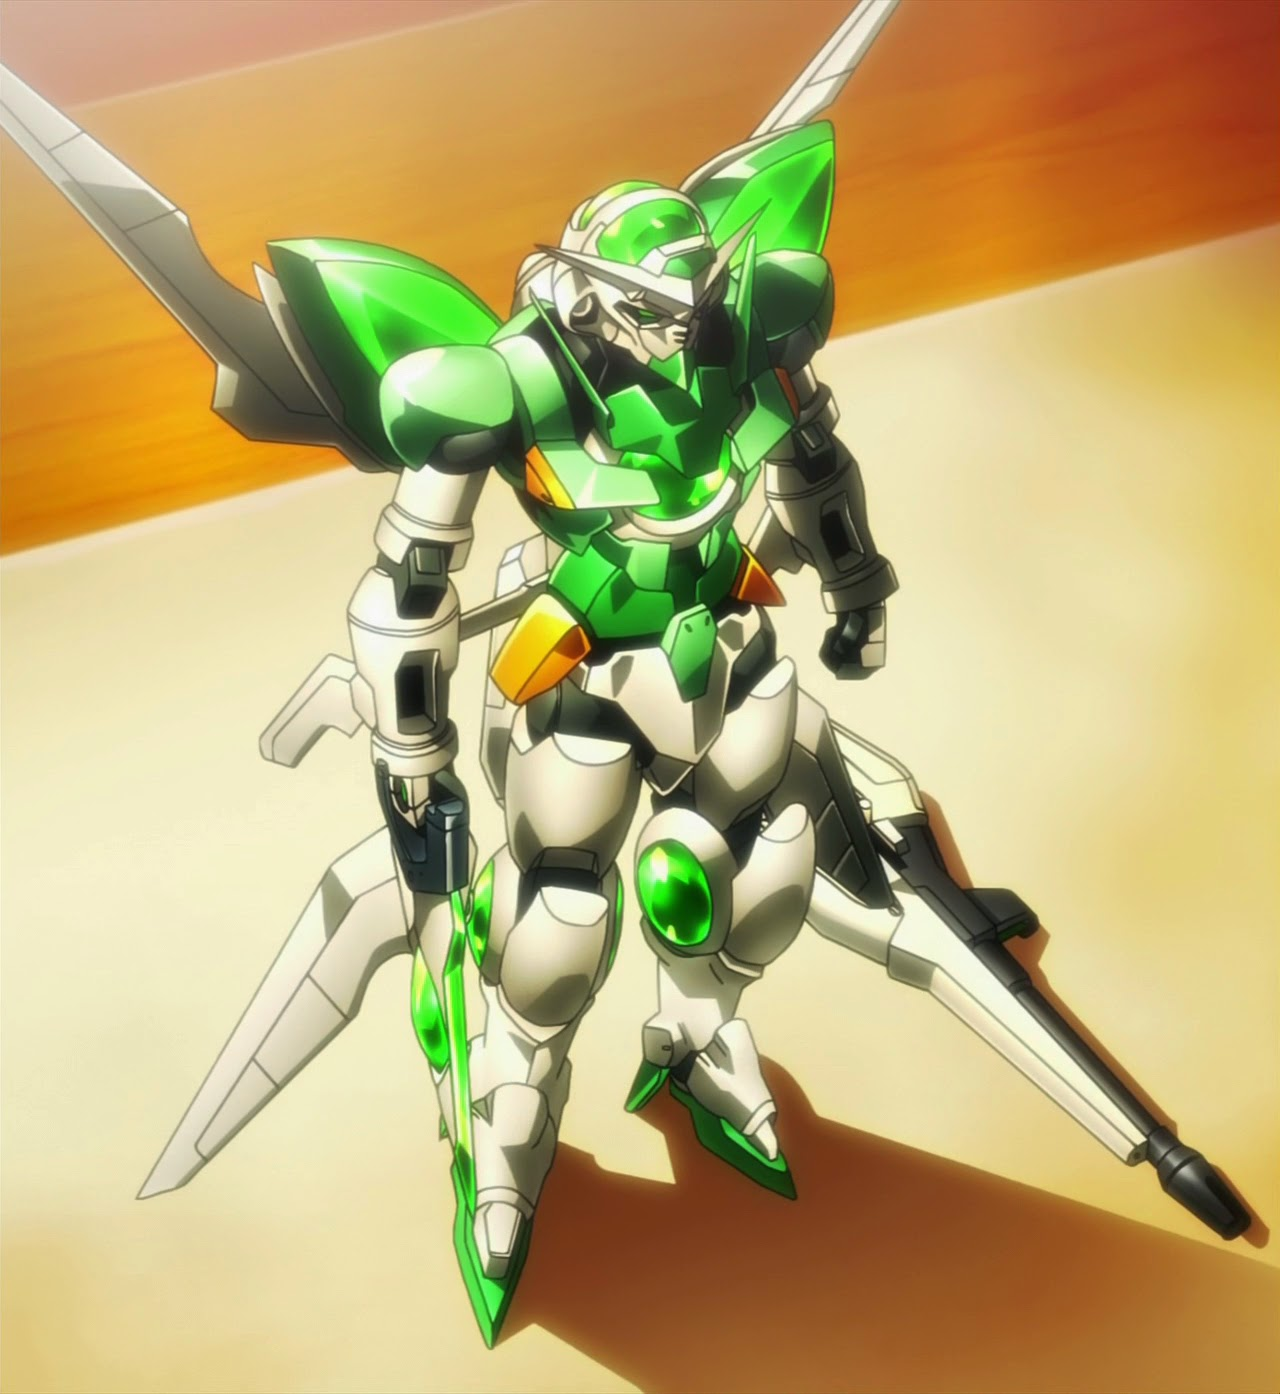 Gundam build fighters try panorama vertical wallpaper for Portent 2014